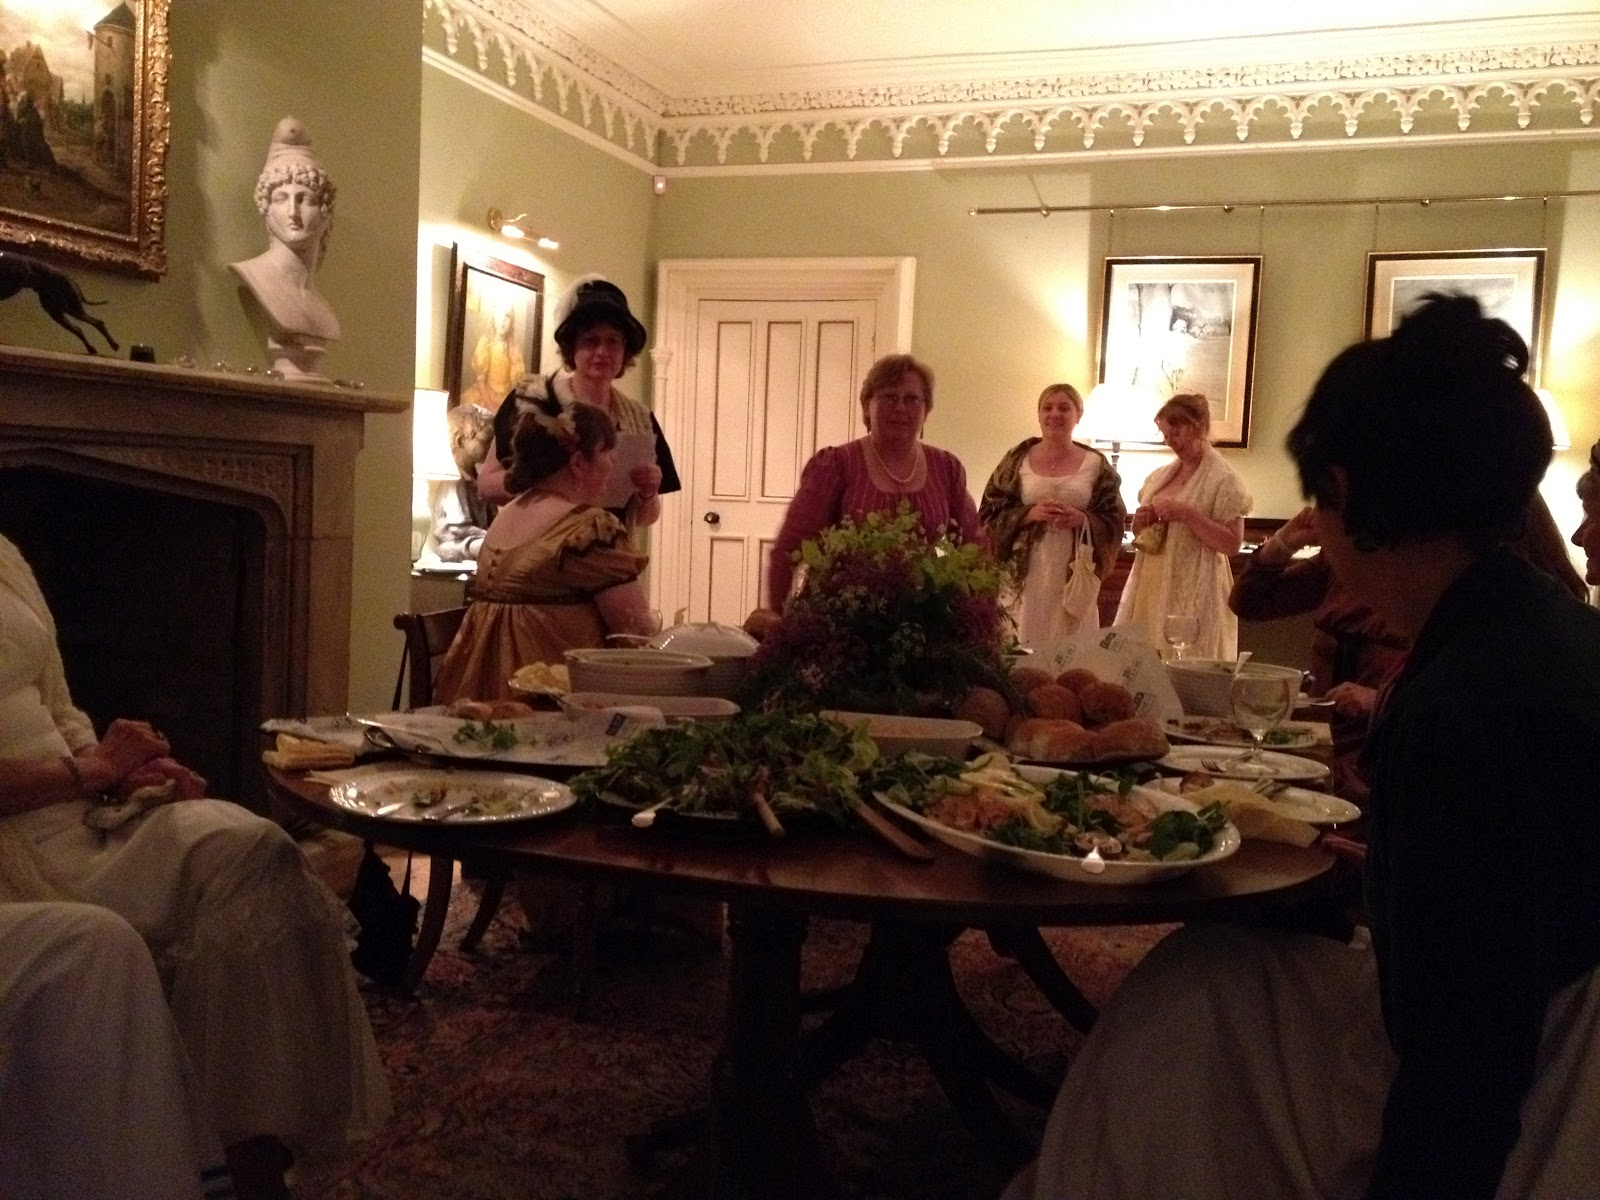 Regency Tea Party: Horcastle Regency Festival 2012 - Part 2